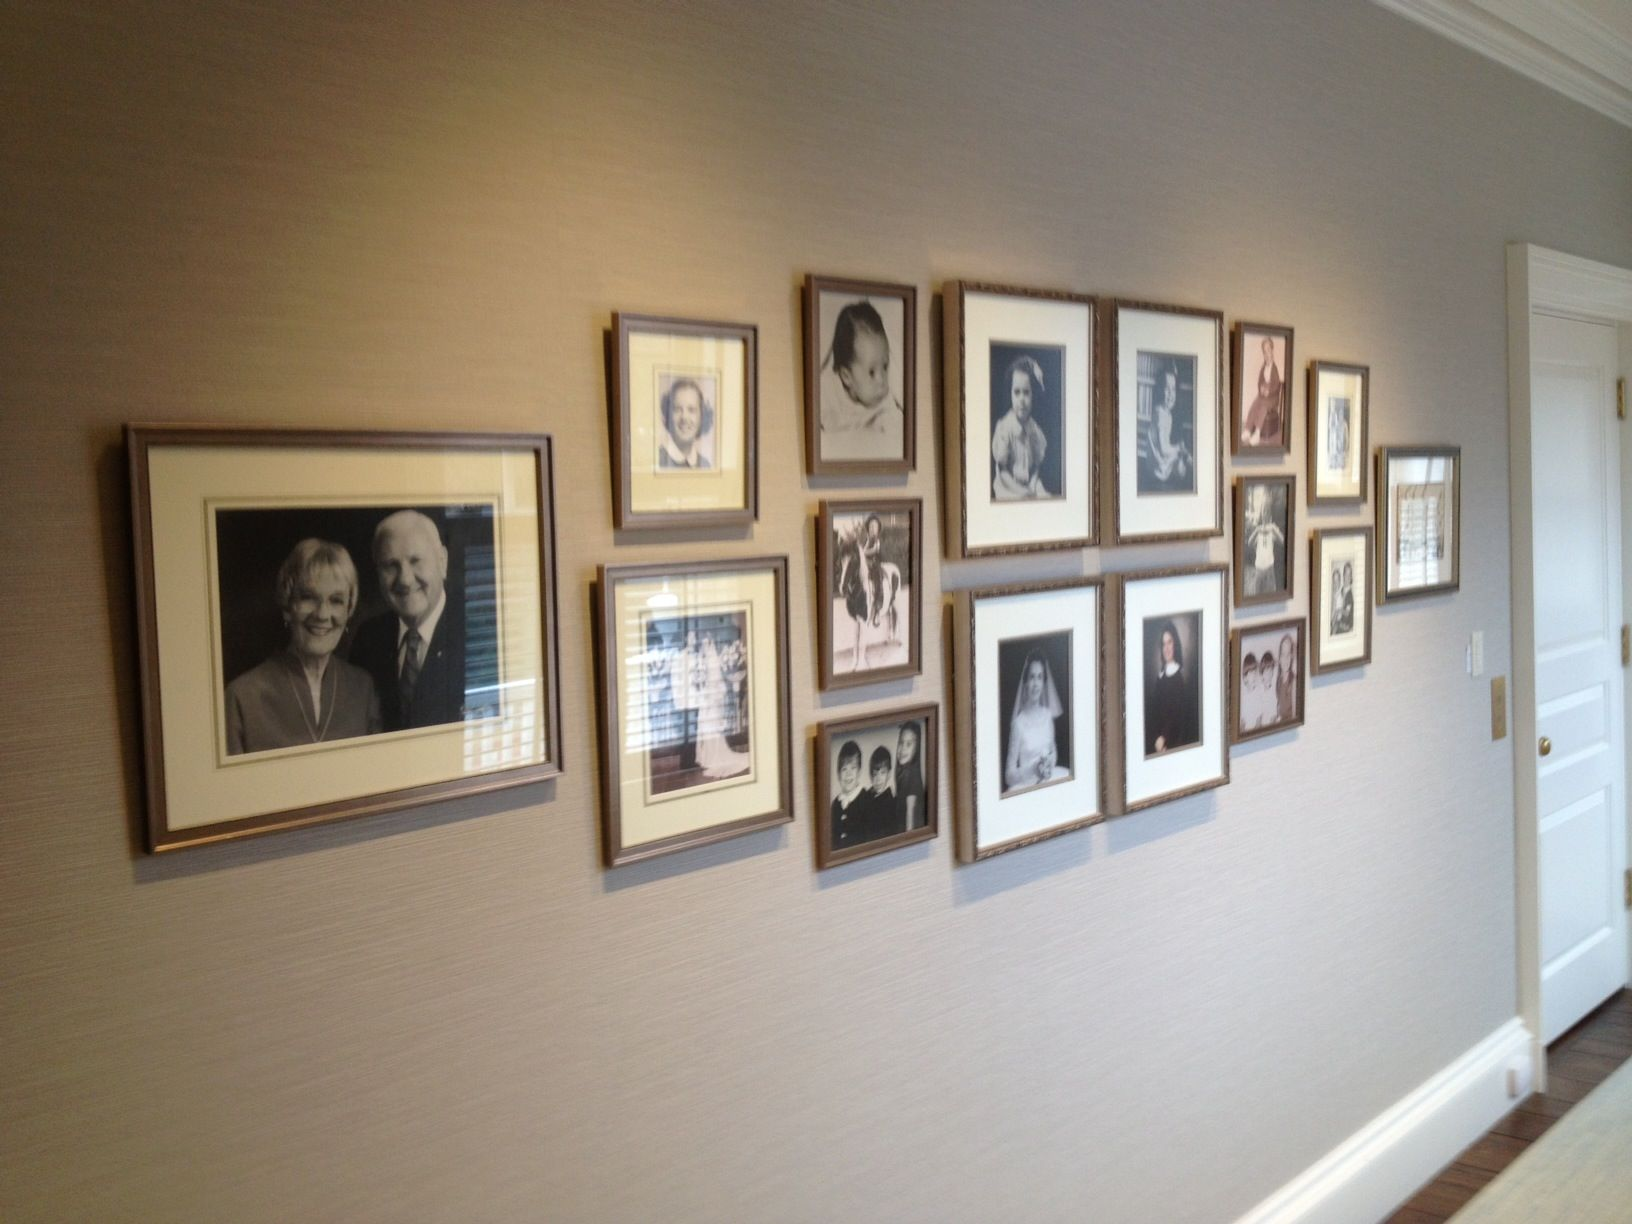 A Symmetrical Arrangement Of Family Photos On A Neutral Wall